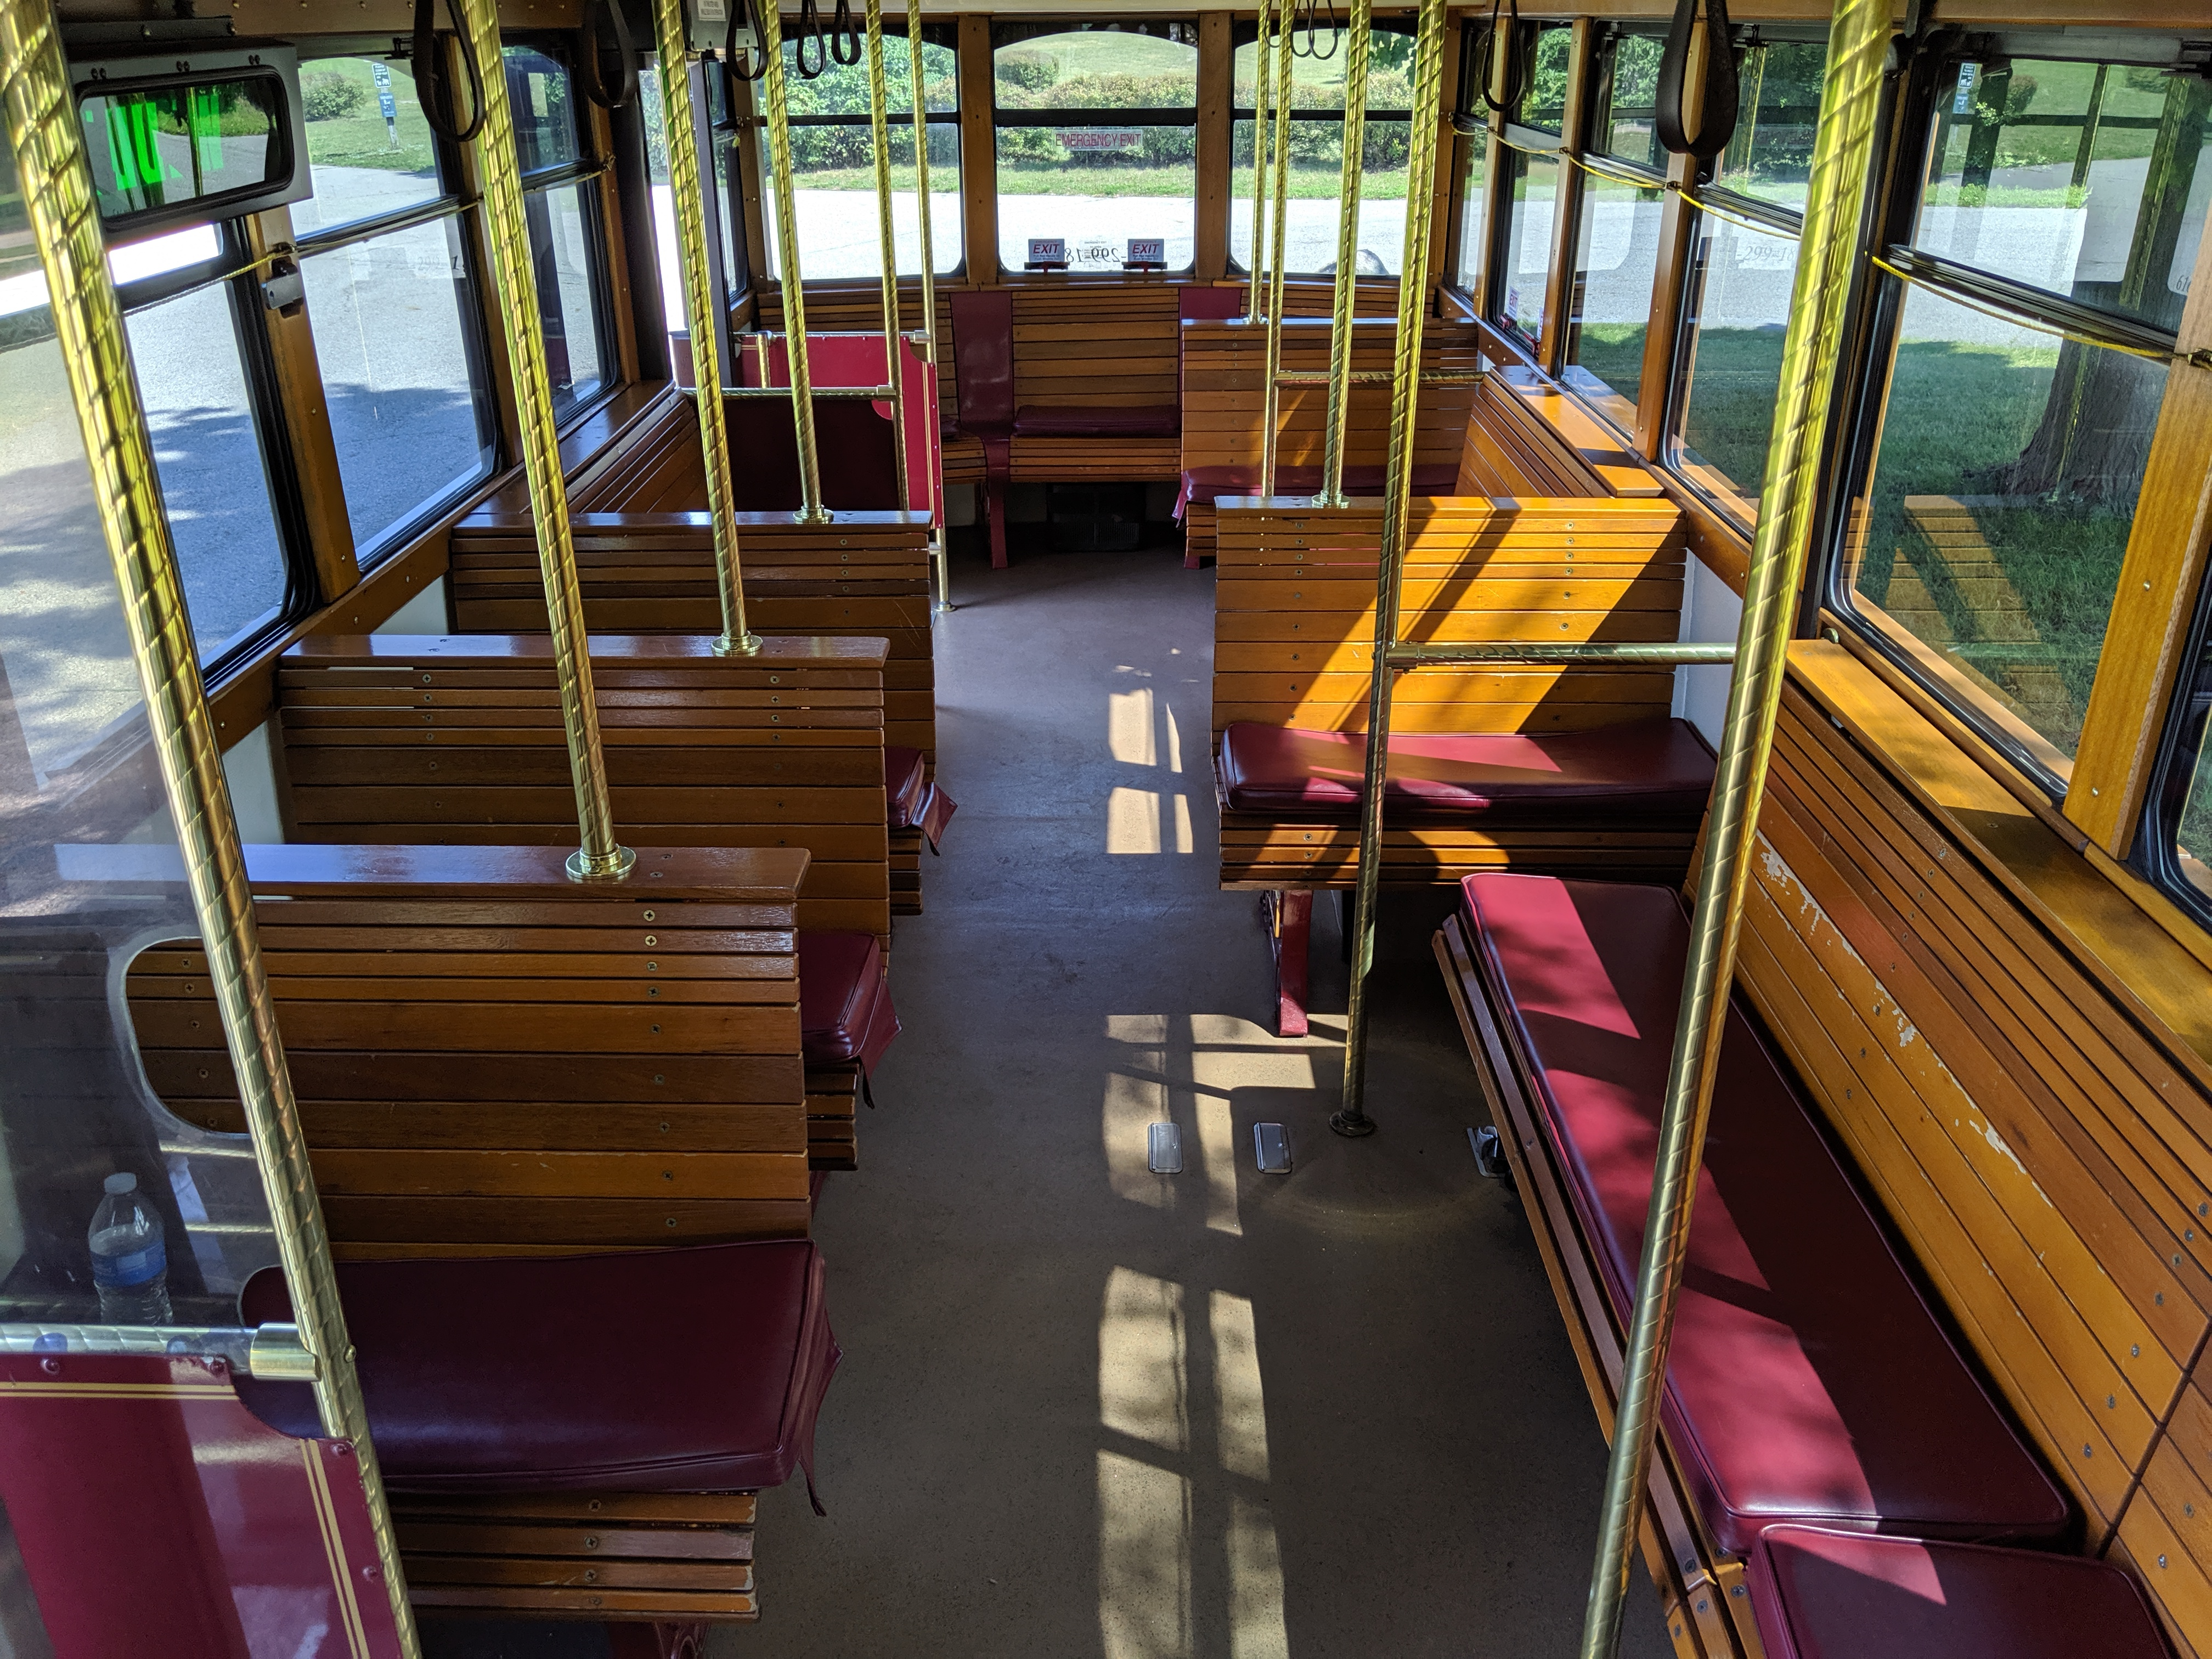 27 Passenger Trolley #27-3 Interior 2